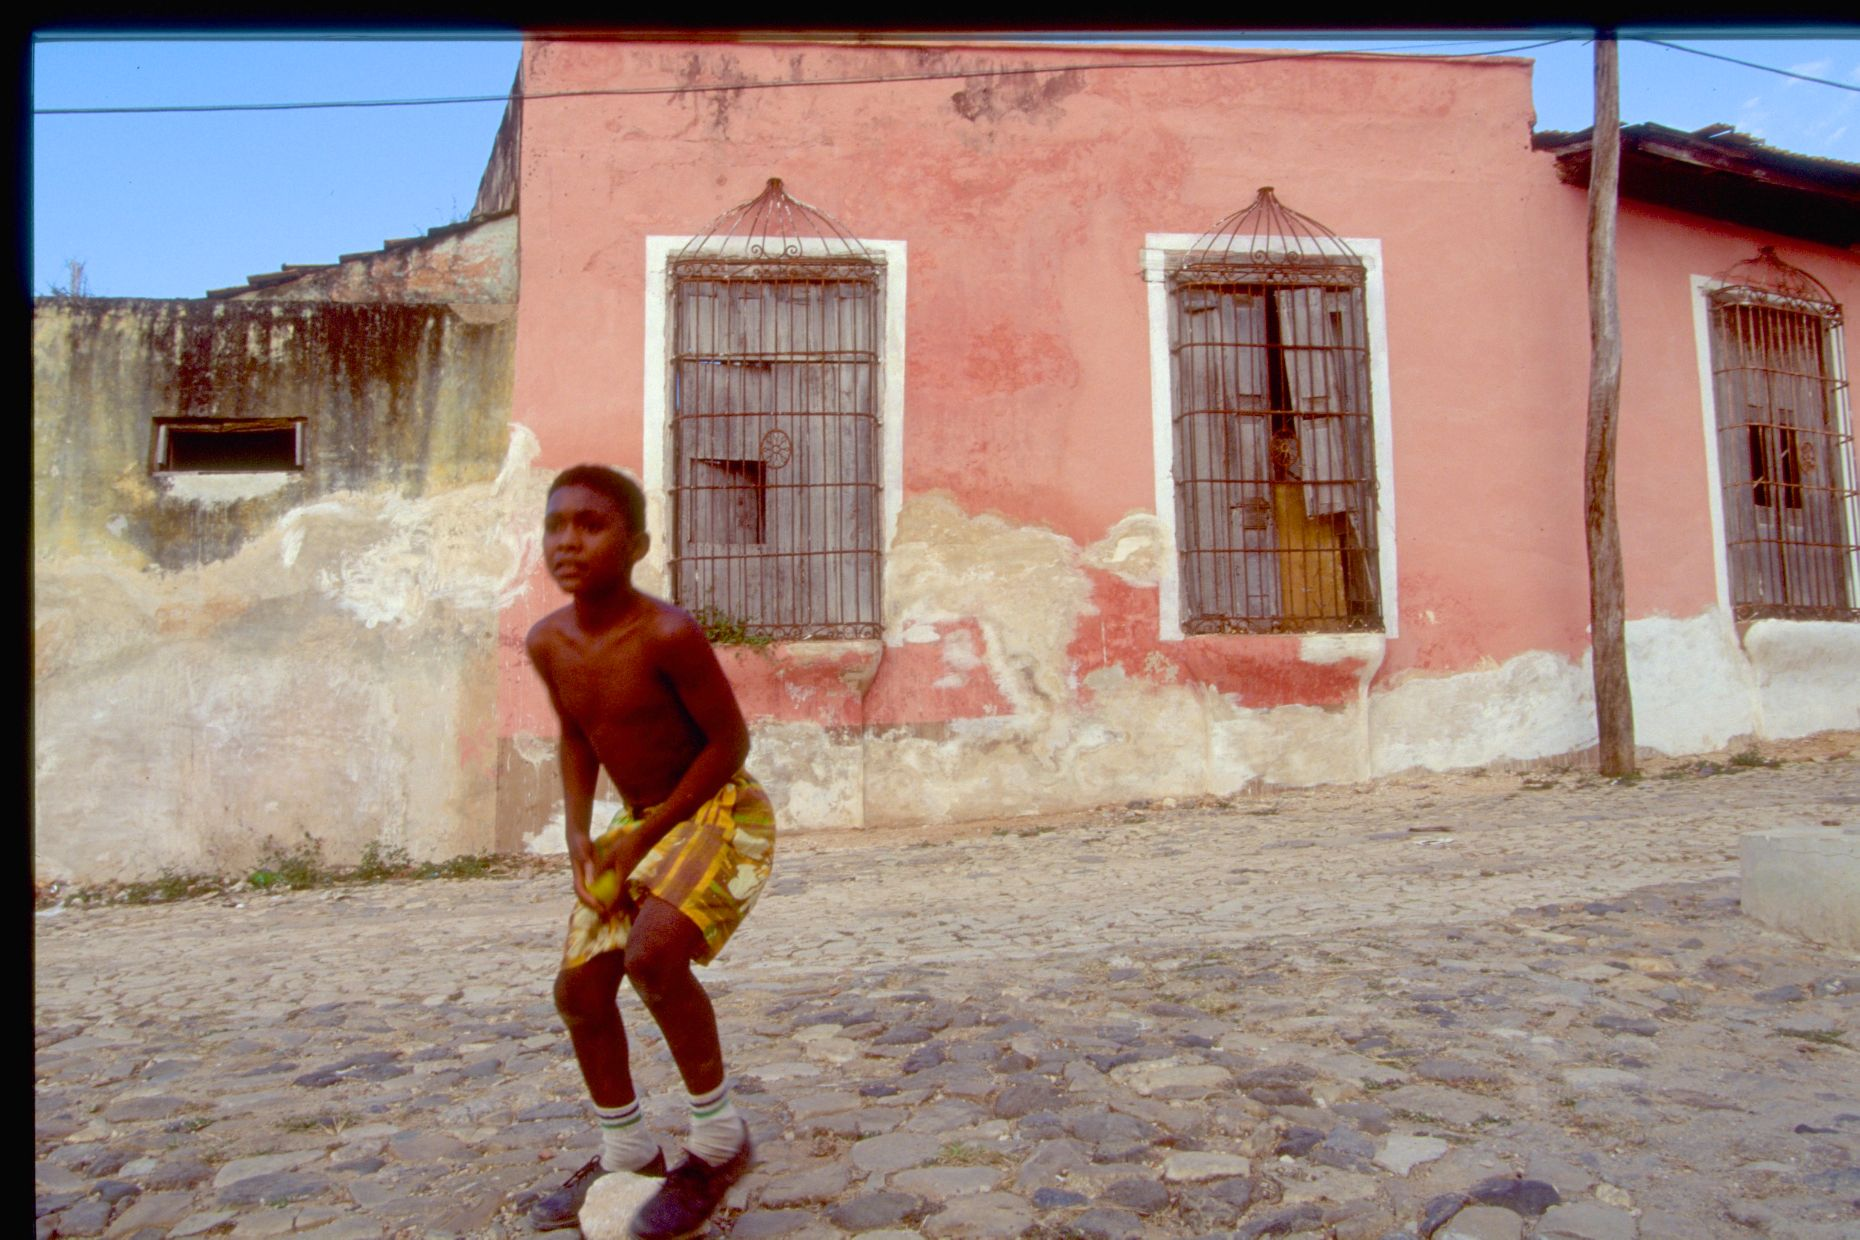 Cuba boy baseball in square-46